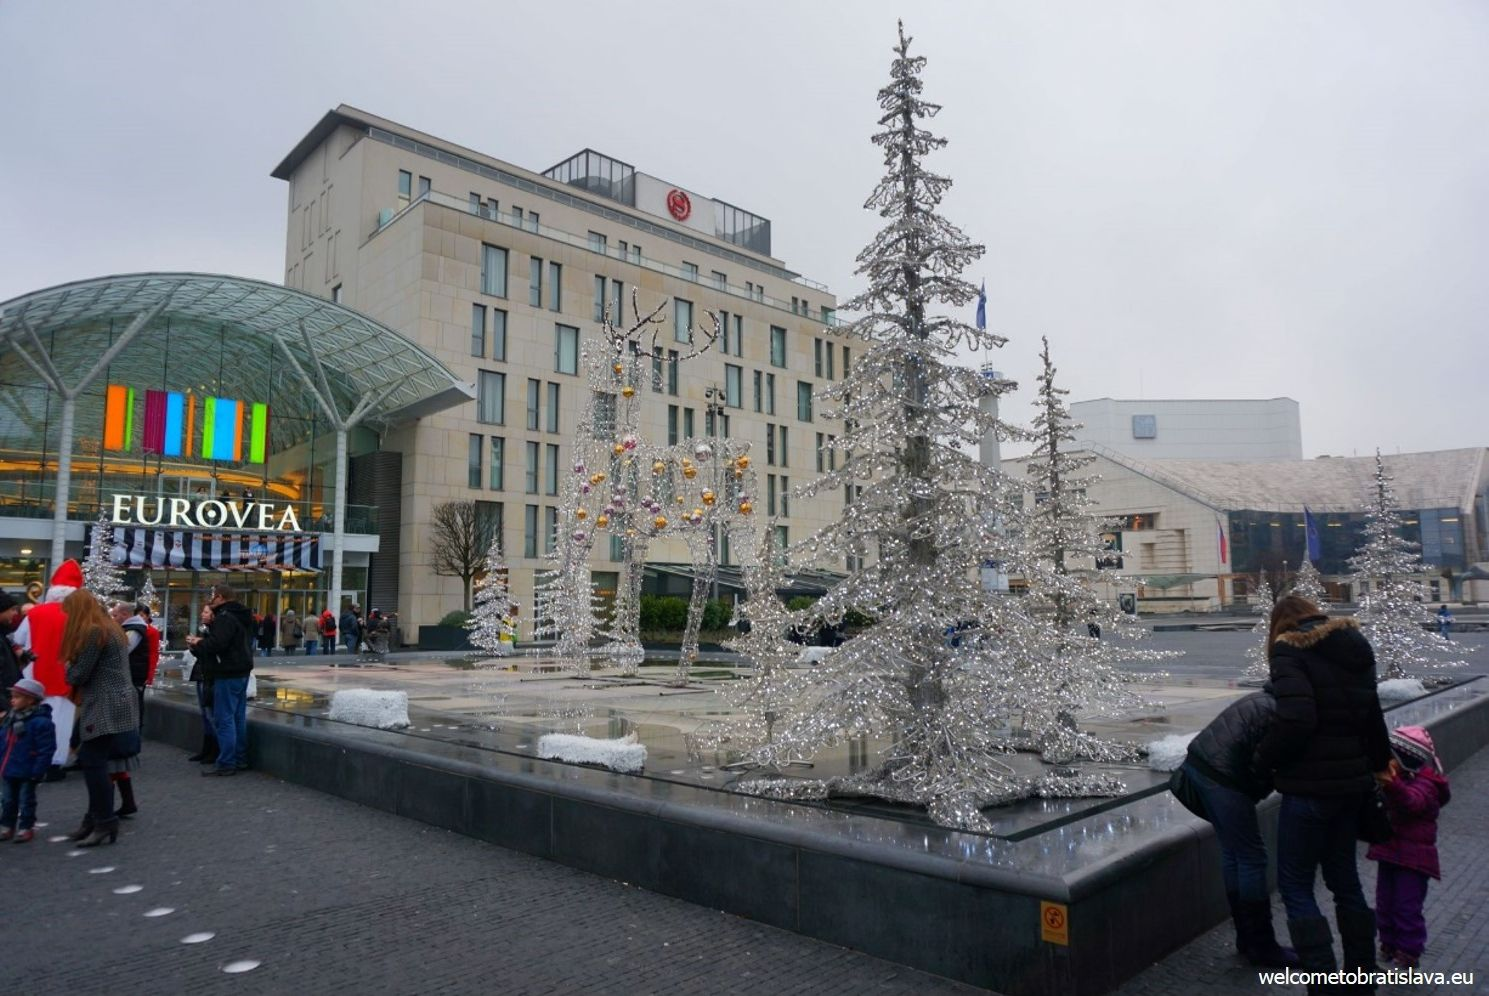 Christmas decoration at Eurovea's square